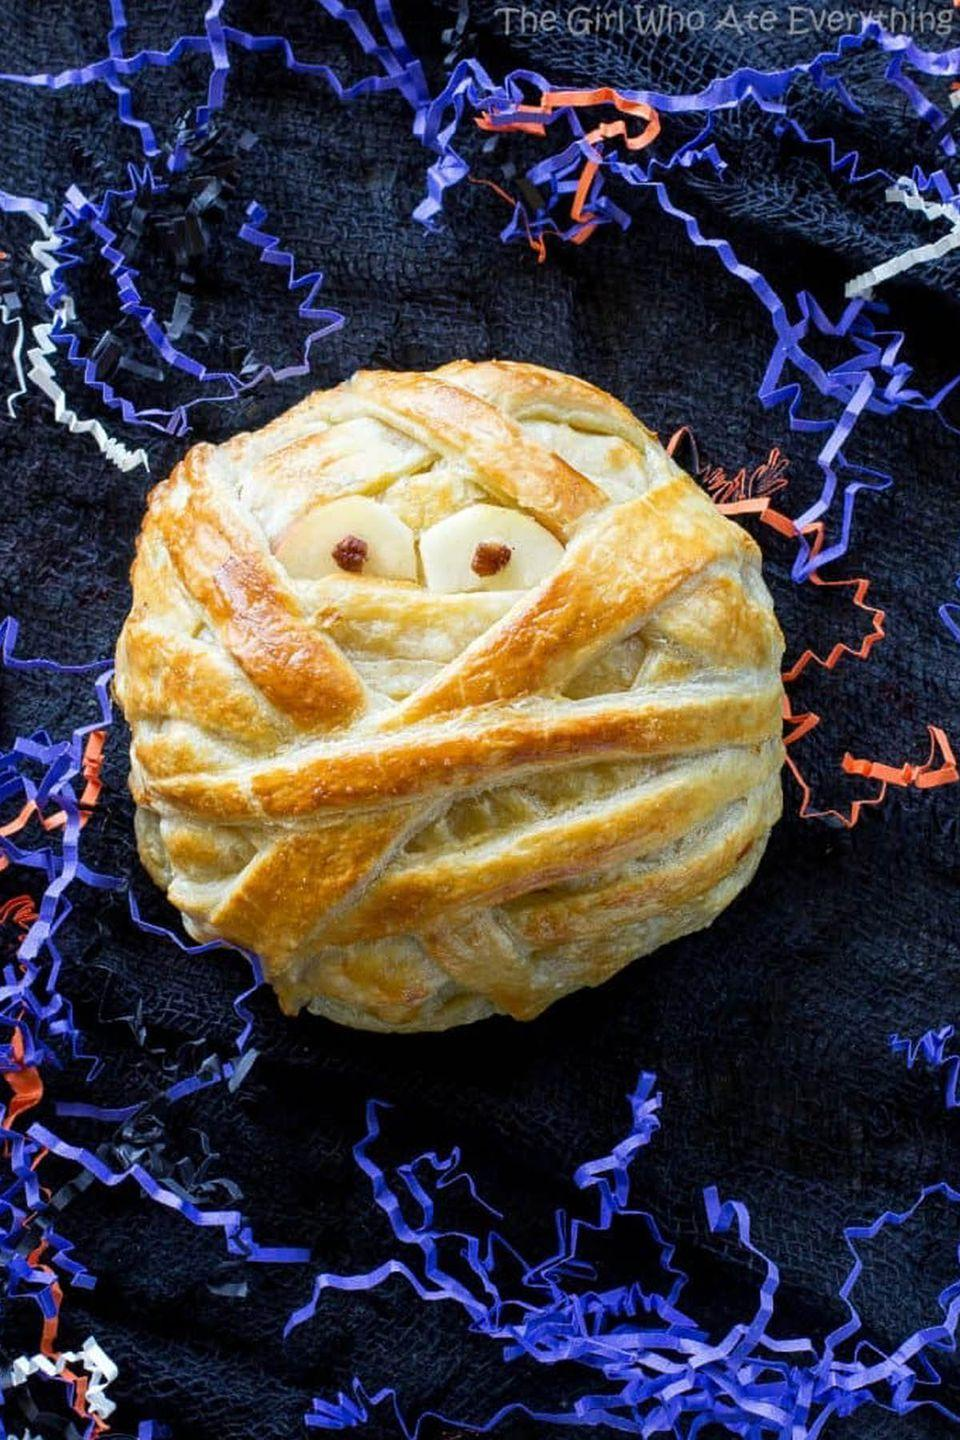 "<p>This spooky pastry face is packed with Brie cheese, brown sugar, and cinnamon pecans for a delicious <a href=""https://www.womansday.com/food-recipes/g2574/easy-halloween-appetizers/"" rel=""nofollow noopener"" target=""_blank"" data-ylk=""slk:Halloween appetizer"" class=""link rapid-noclick-resp"">Halloween appetizer</a>. </p><p><strong>Get the recipe at <a href=""http://www.the-girl-who-ate-everything.com/2016/10/mummy-brie.html"" rel=""nofollow noopener"" target=""_blank"" data-ylk=""slk:The Girl Who Ate Everything"" class=""link rapid-noclick-resp"">The Girl Who Ate Everything</a>. </strong></p>"